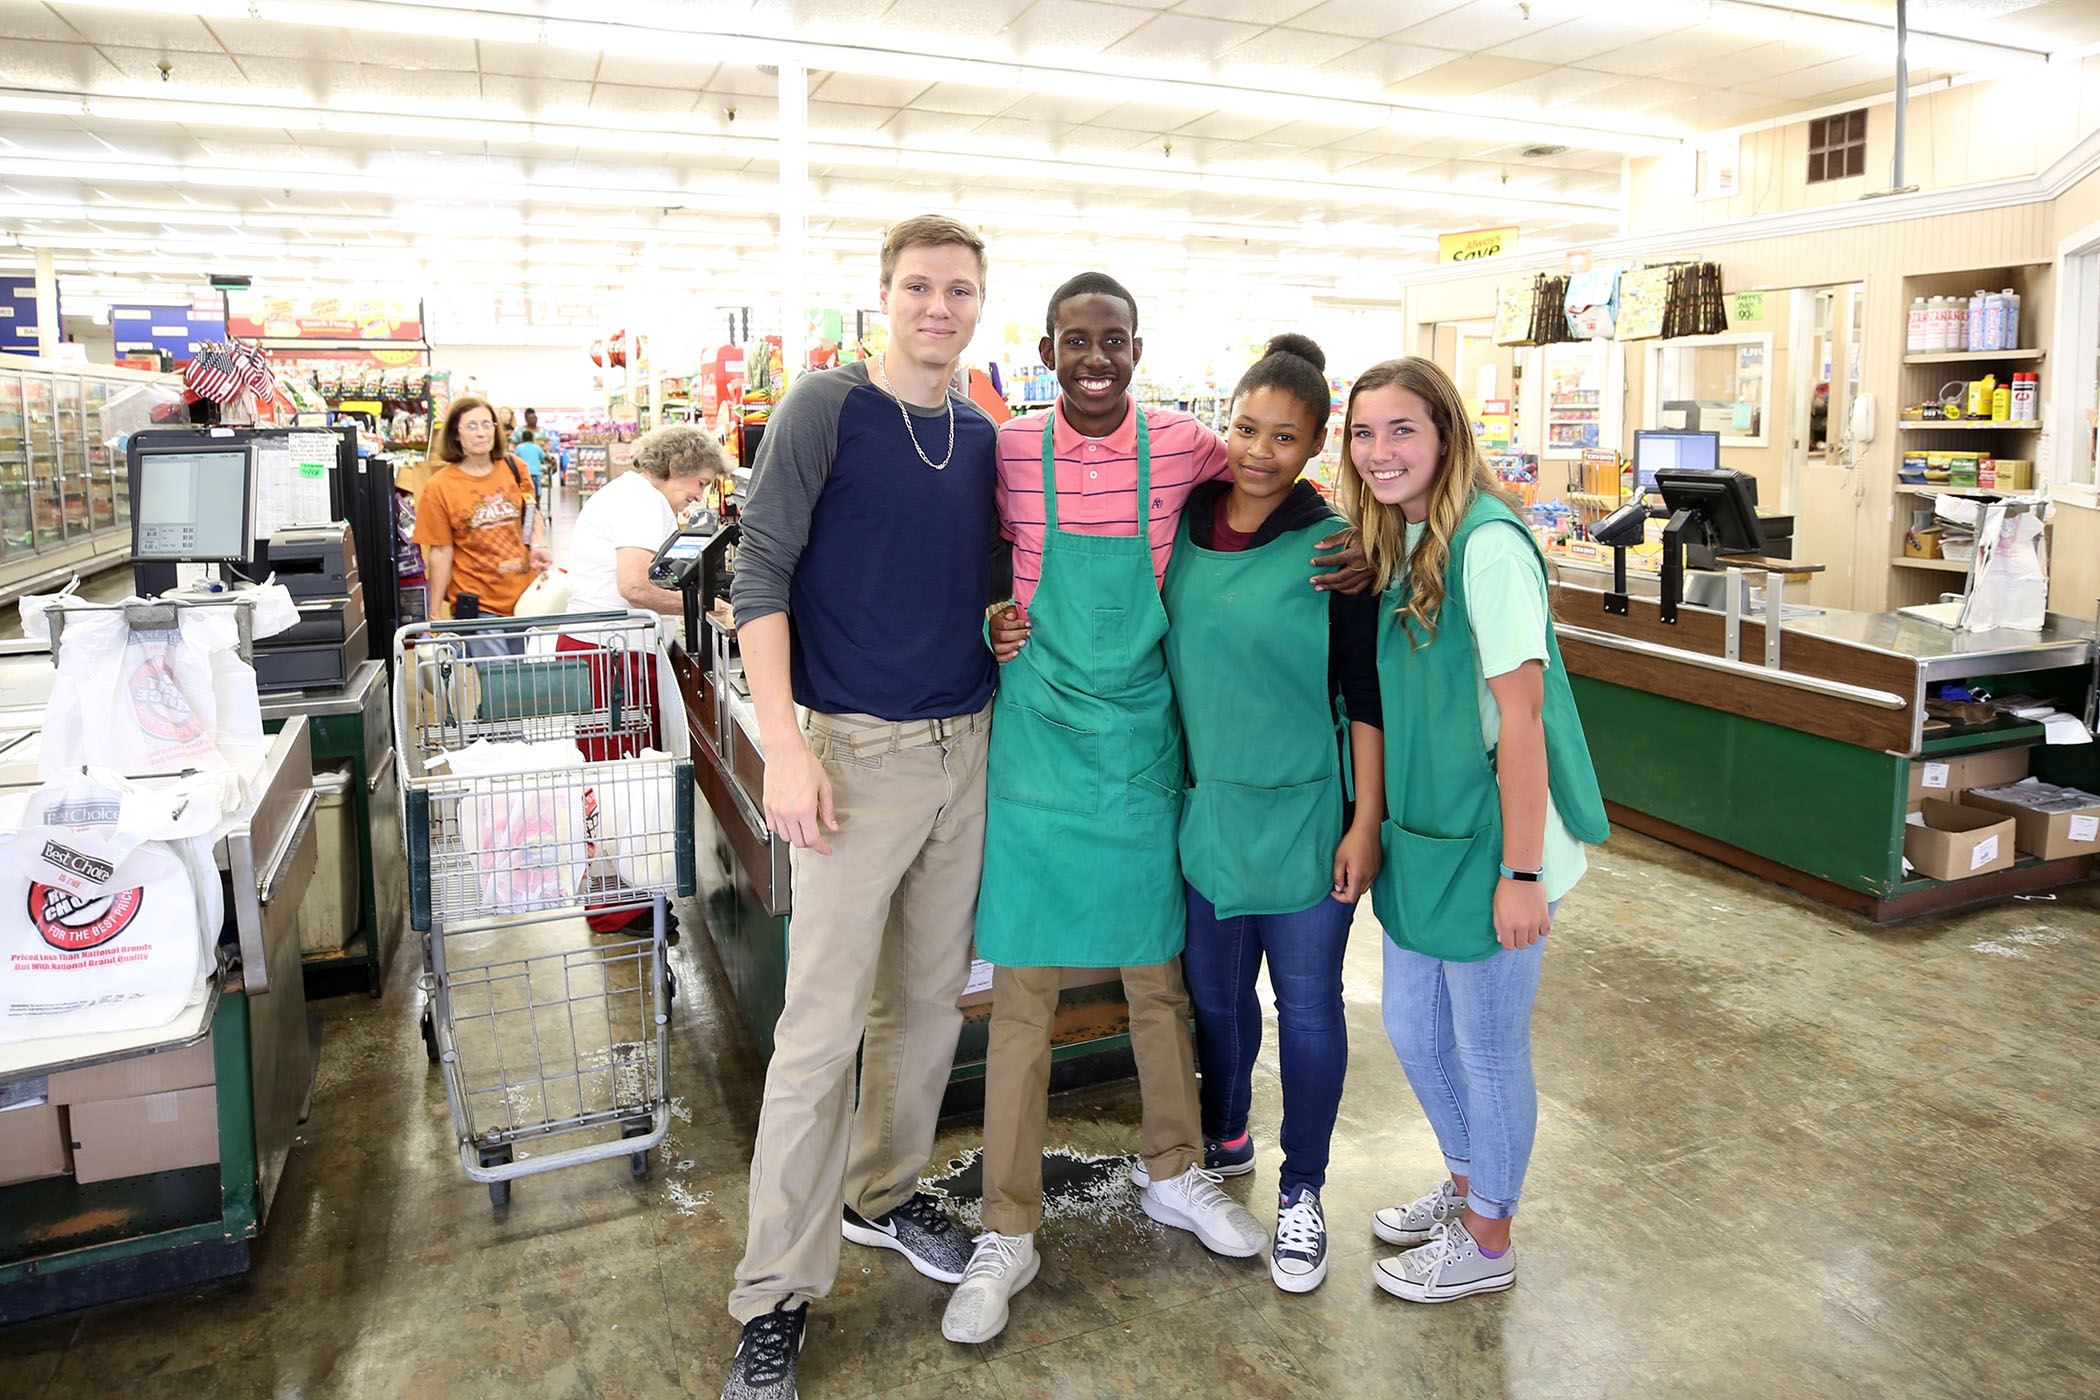 Tyshun stands with his coworkers/classmates at the local grocery store where he works after school.